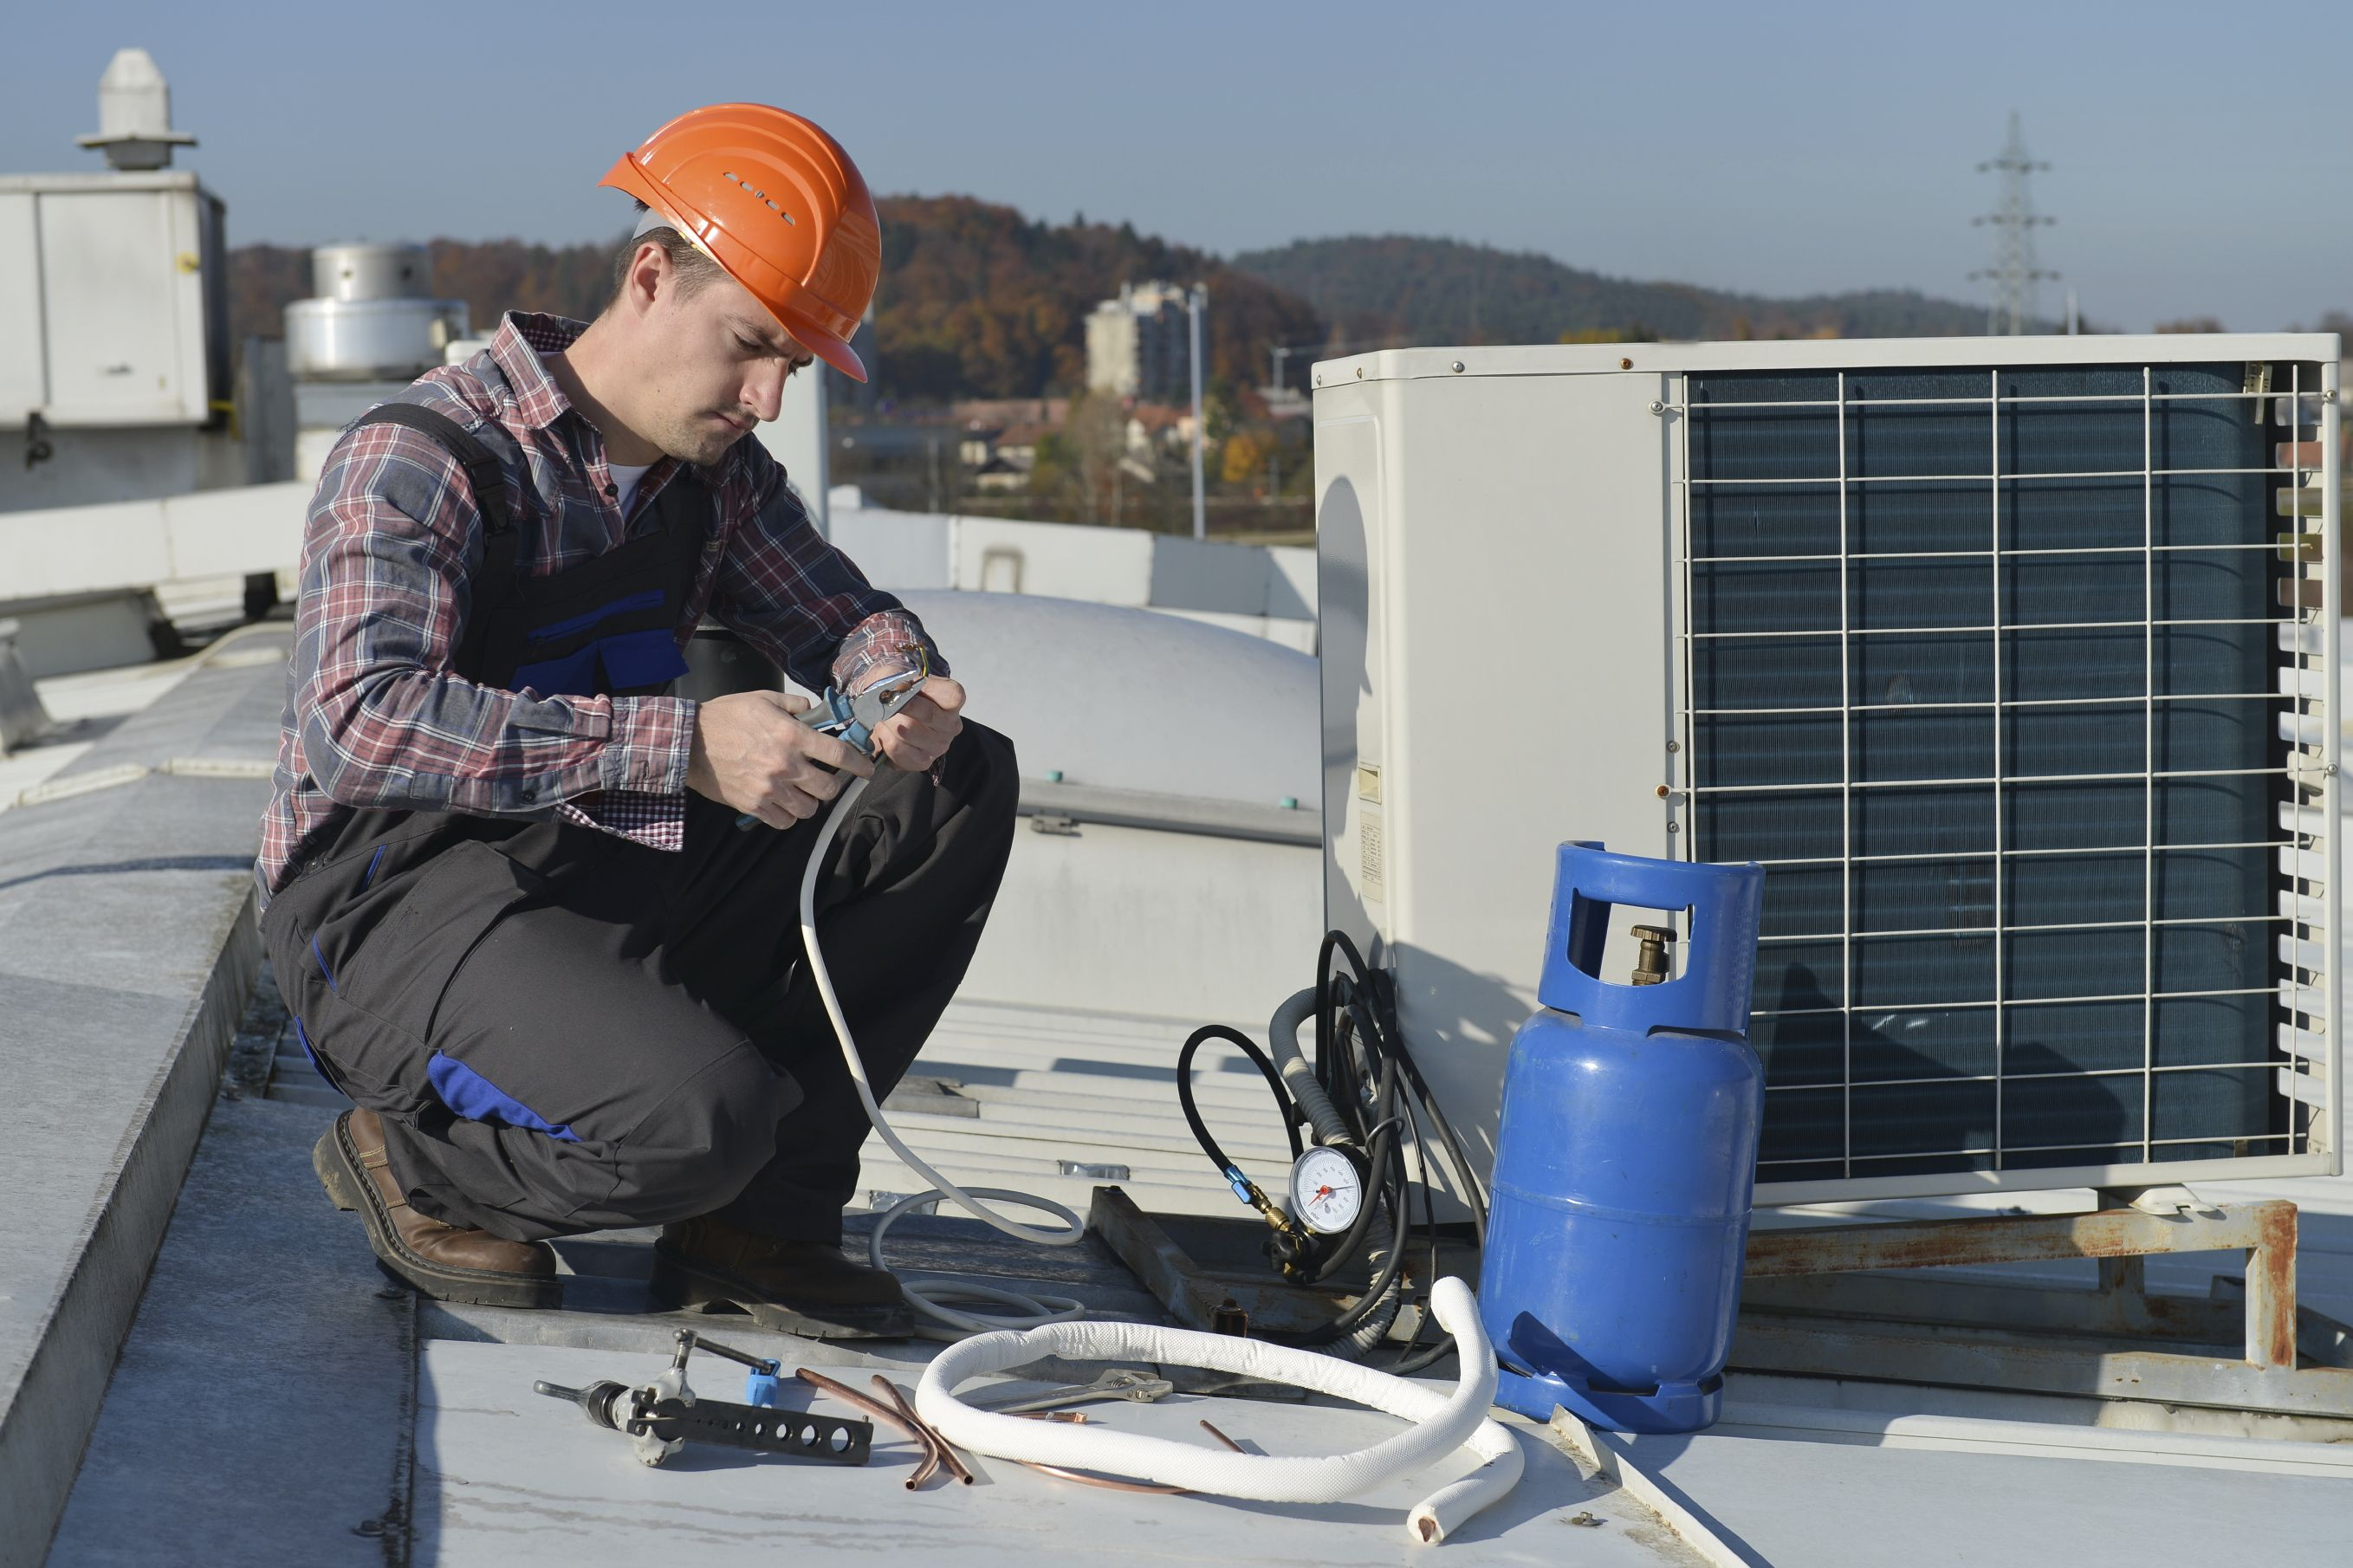 Budget Heating And Cooling South Hill Specializes In Residential